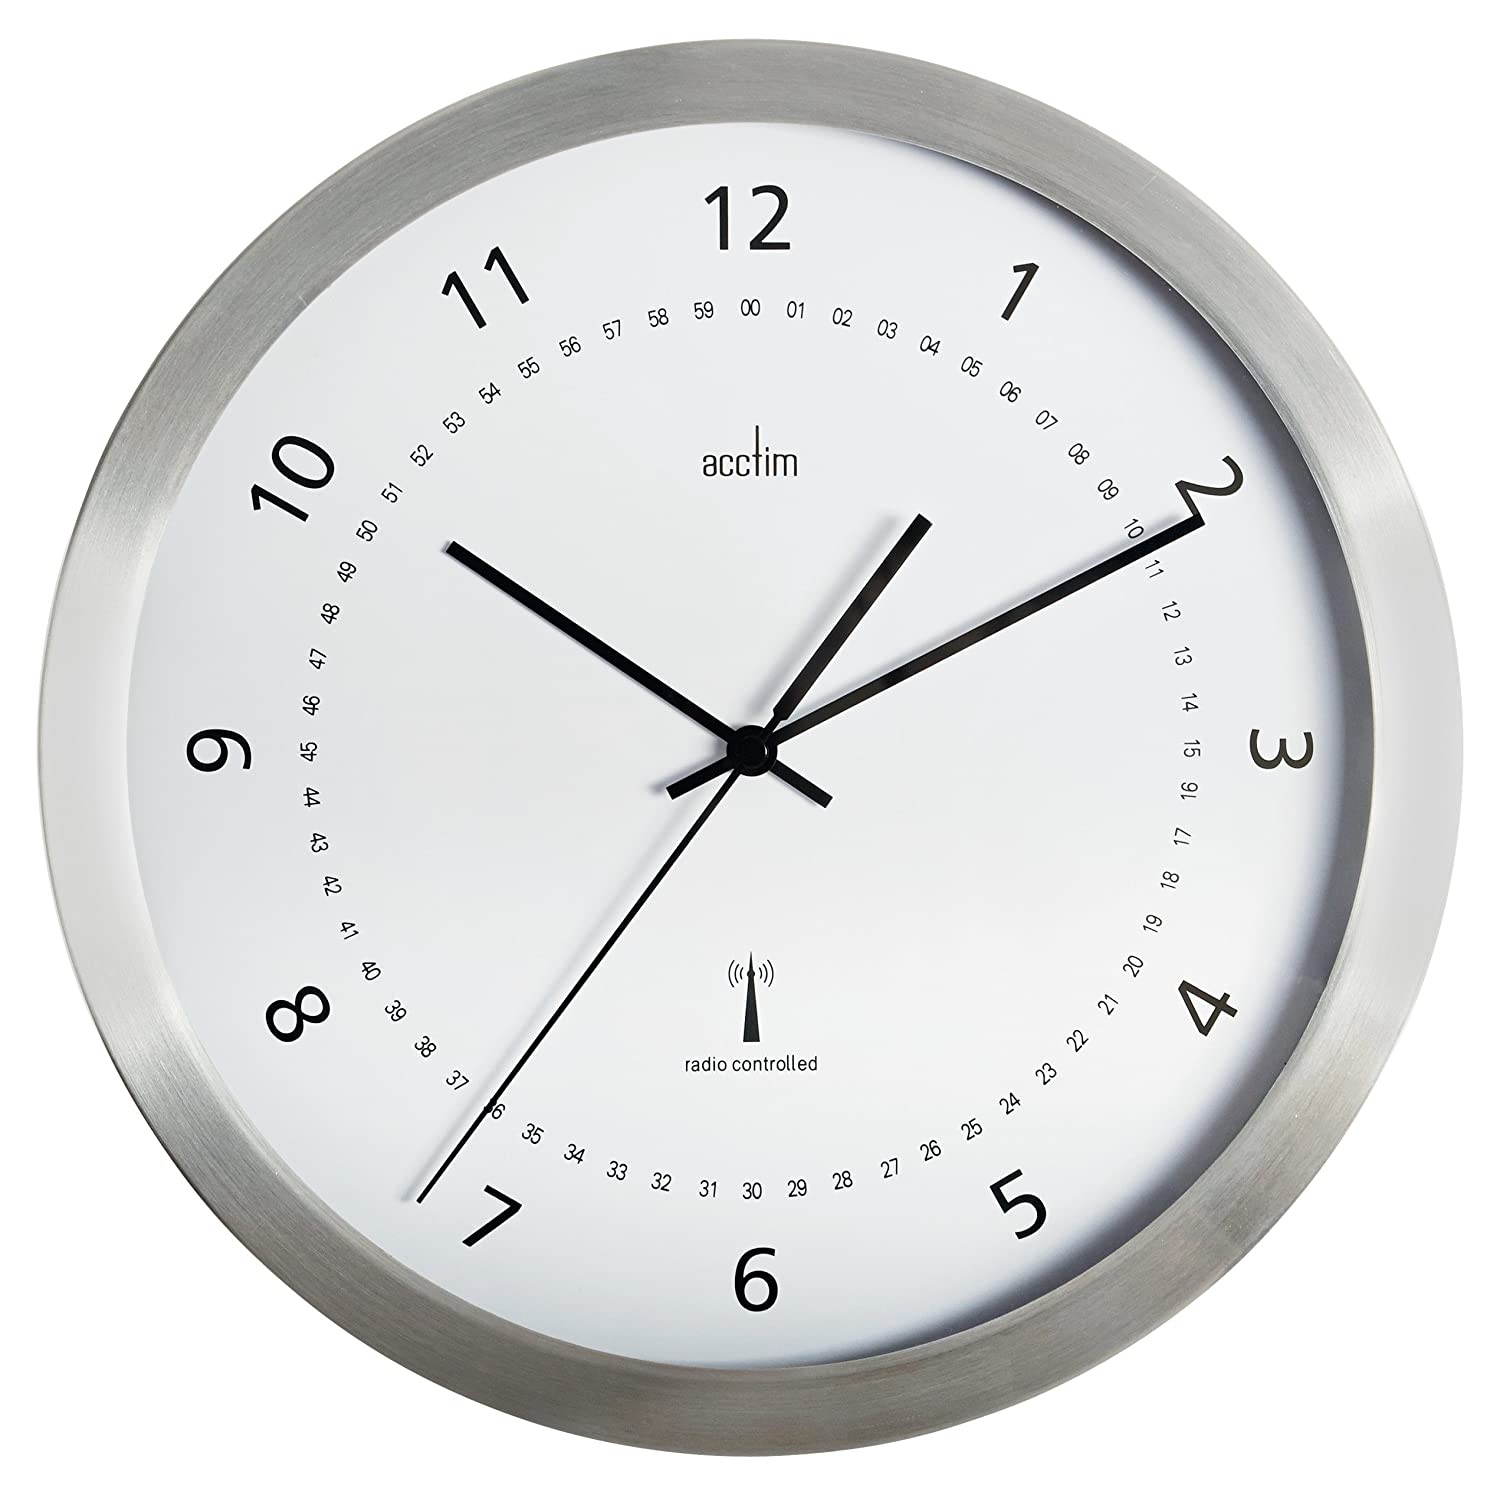 Acctim 74277 Kaava Radio Controlled Metal Case Wall Clock, 12 Inch Clocks Decorative_Accessories